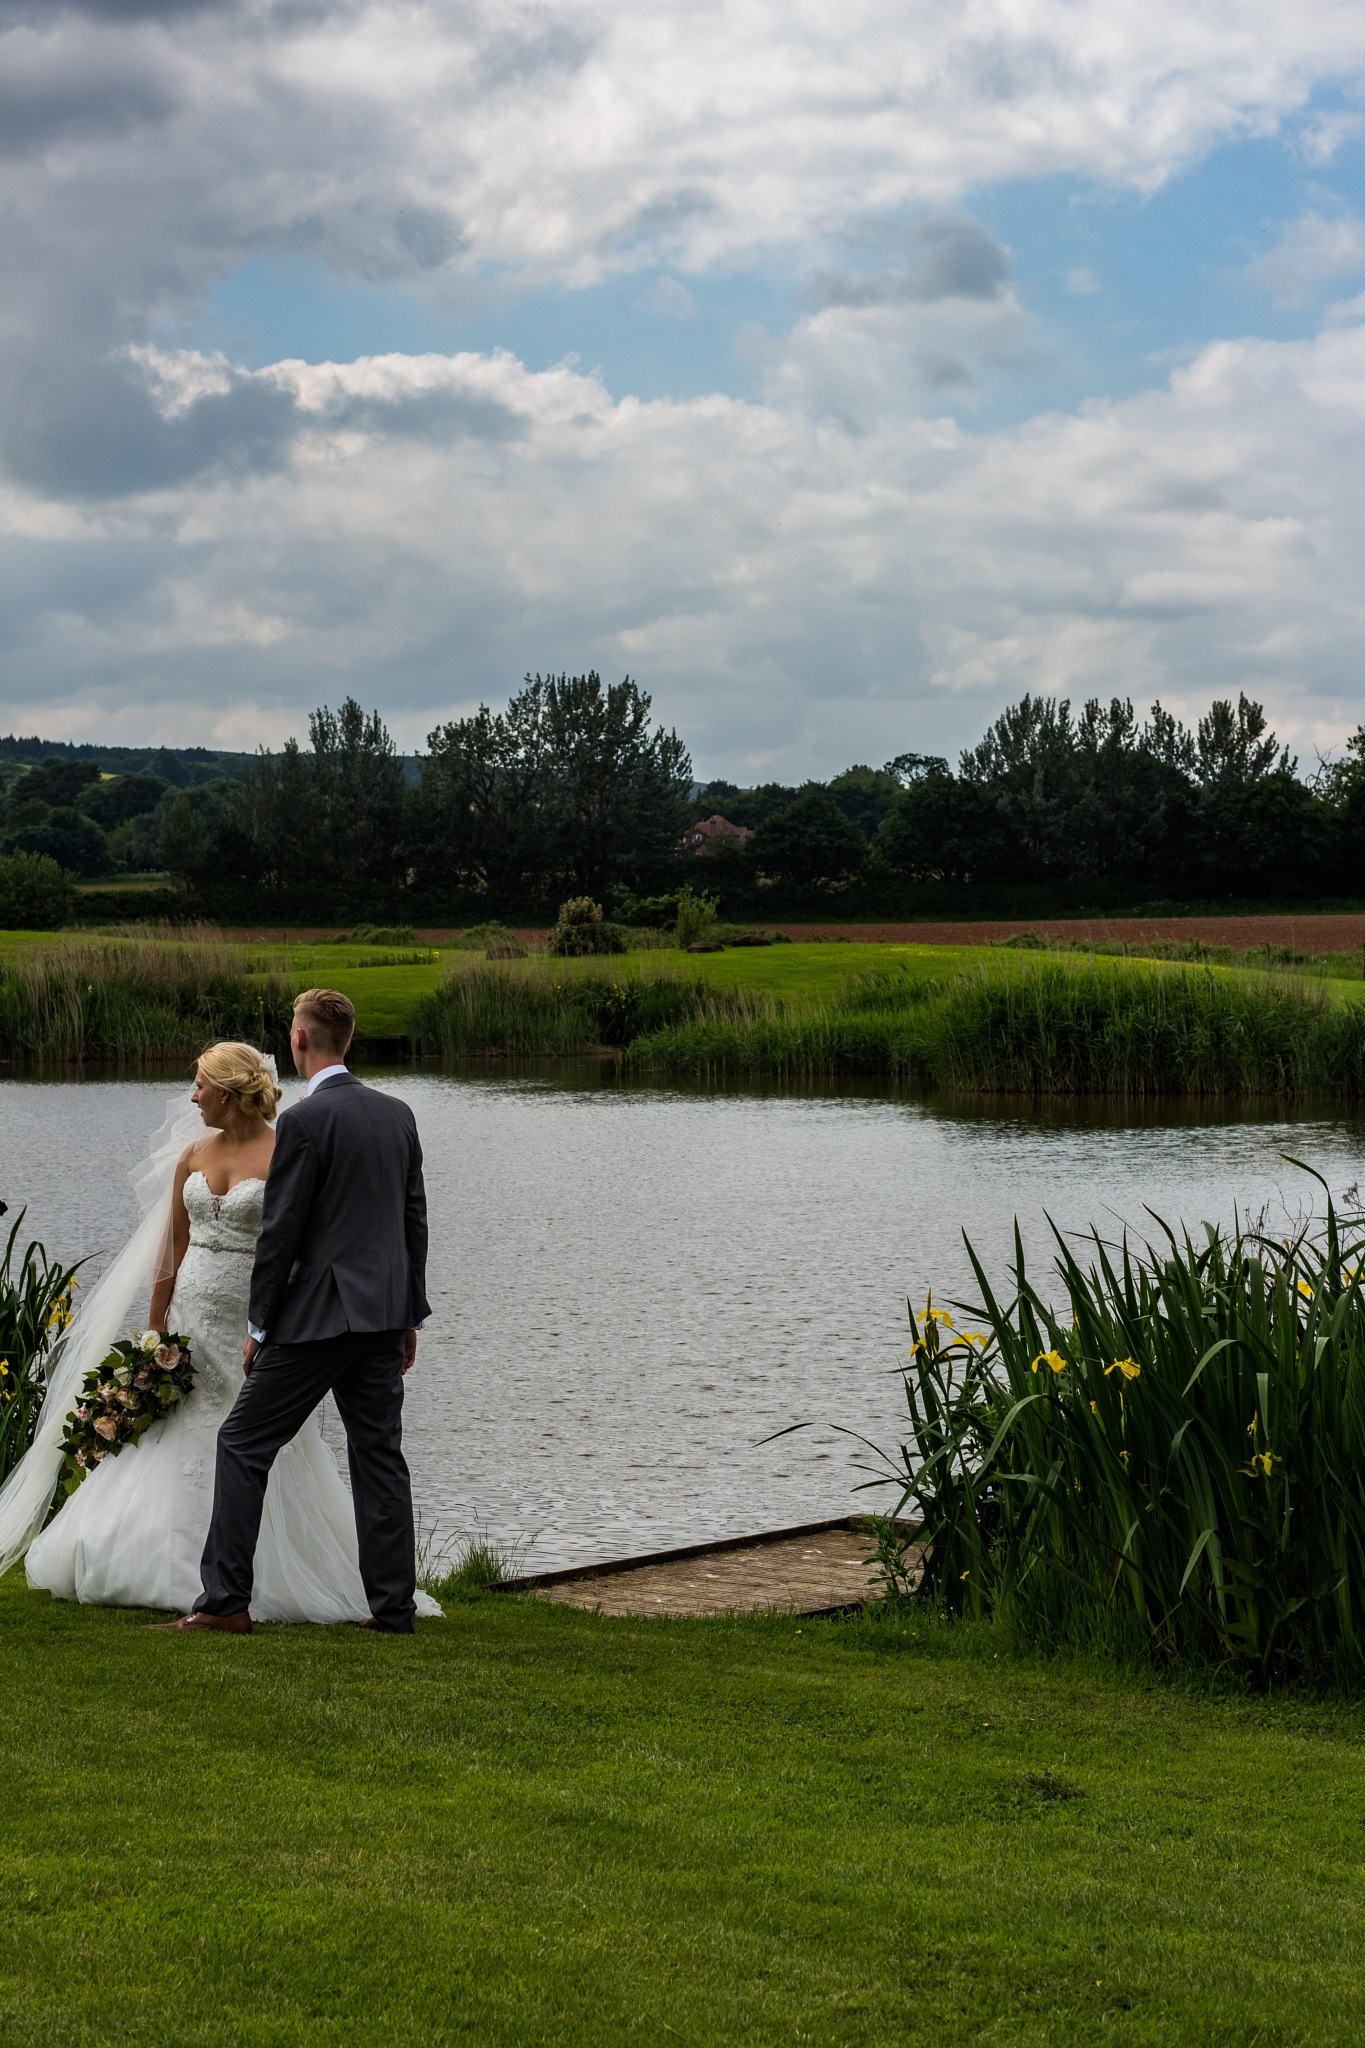 Wedding by the lake by Eden Perry-Thorne